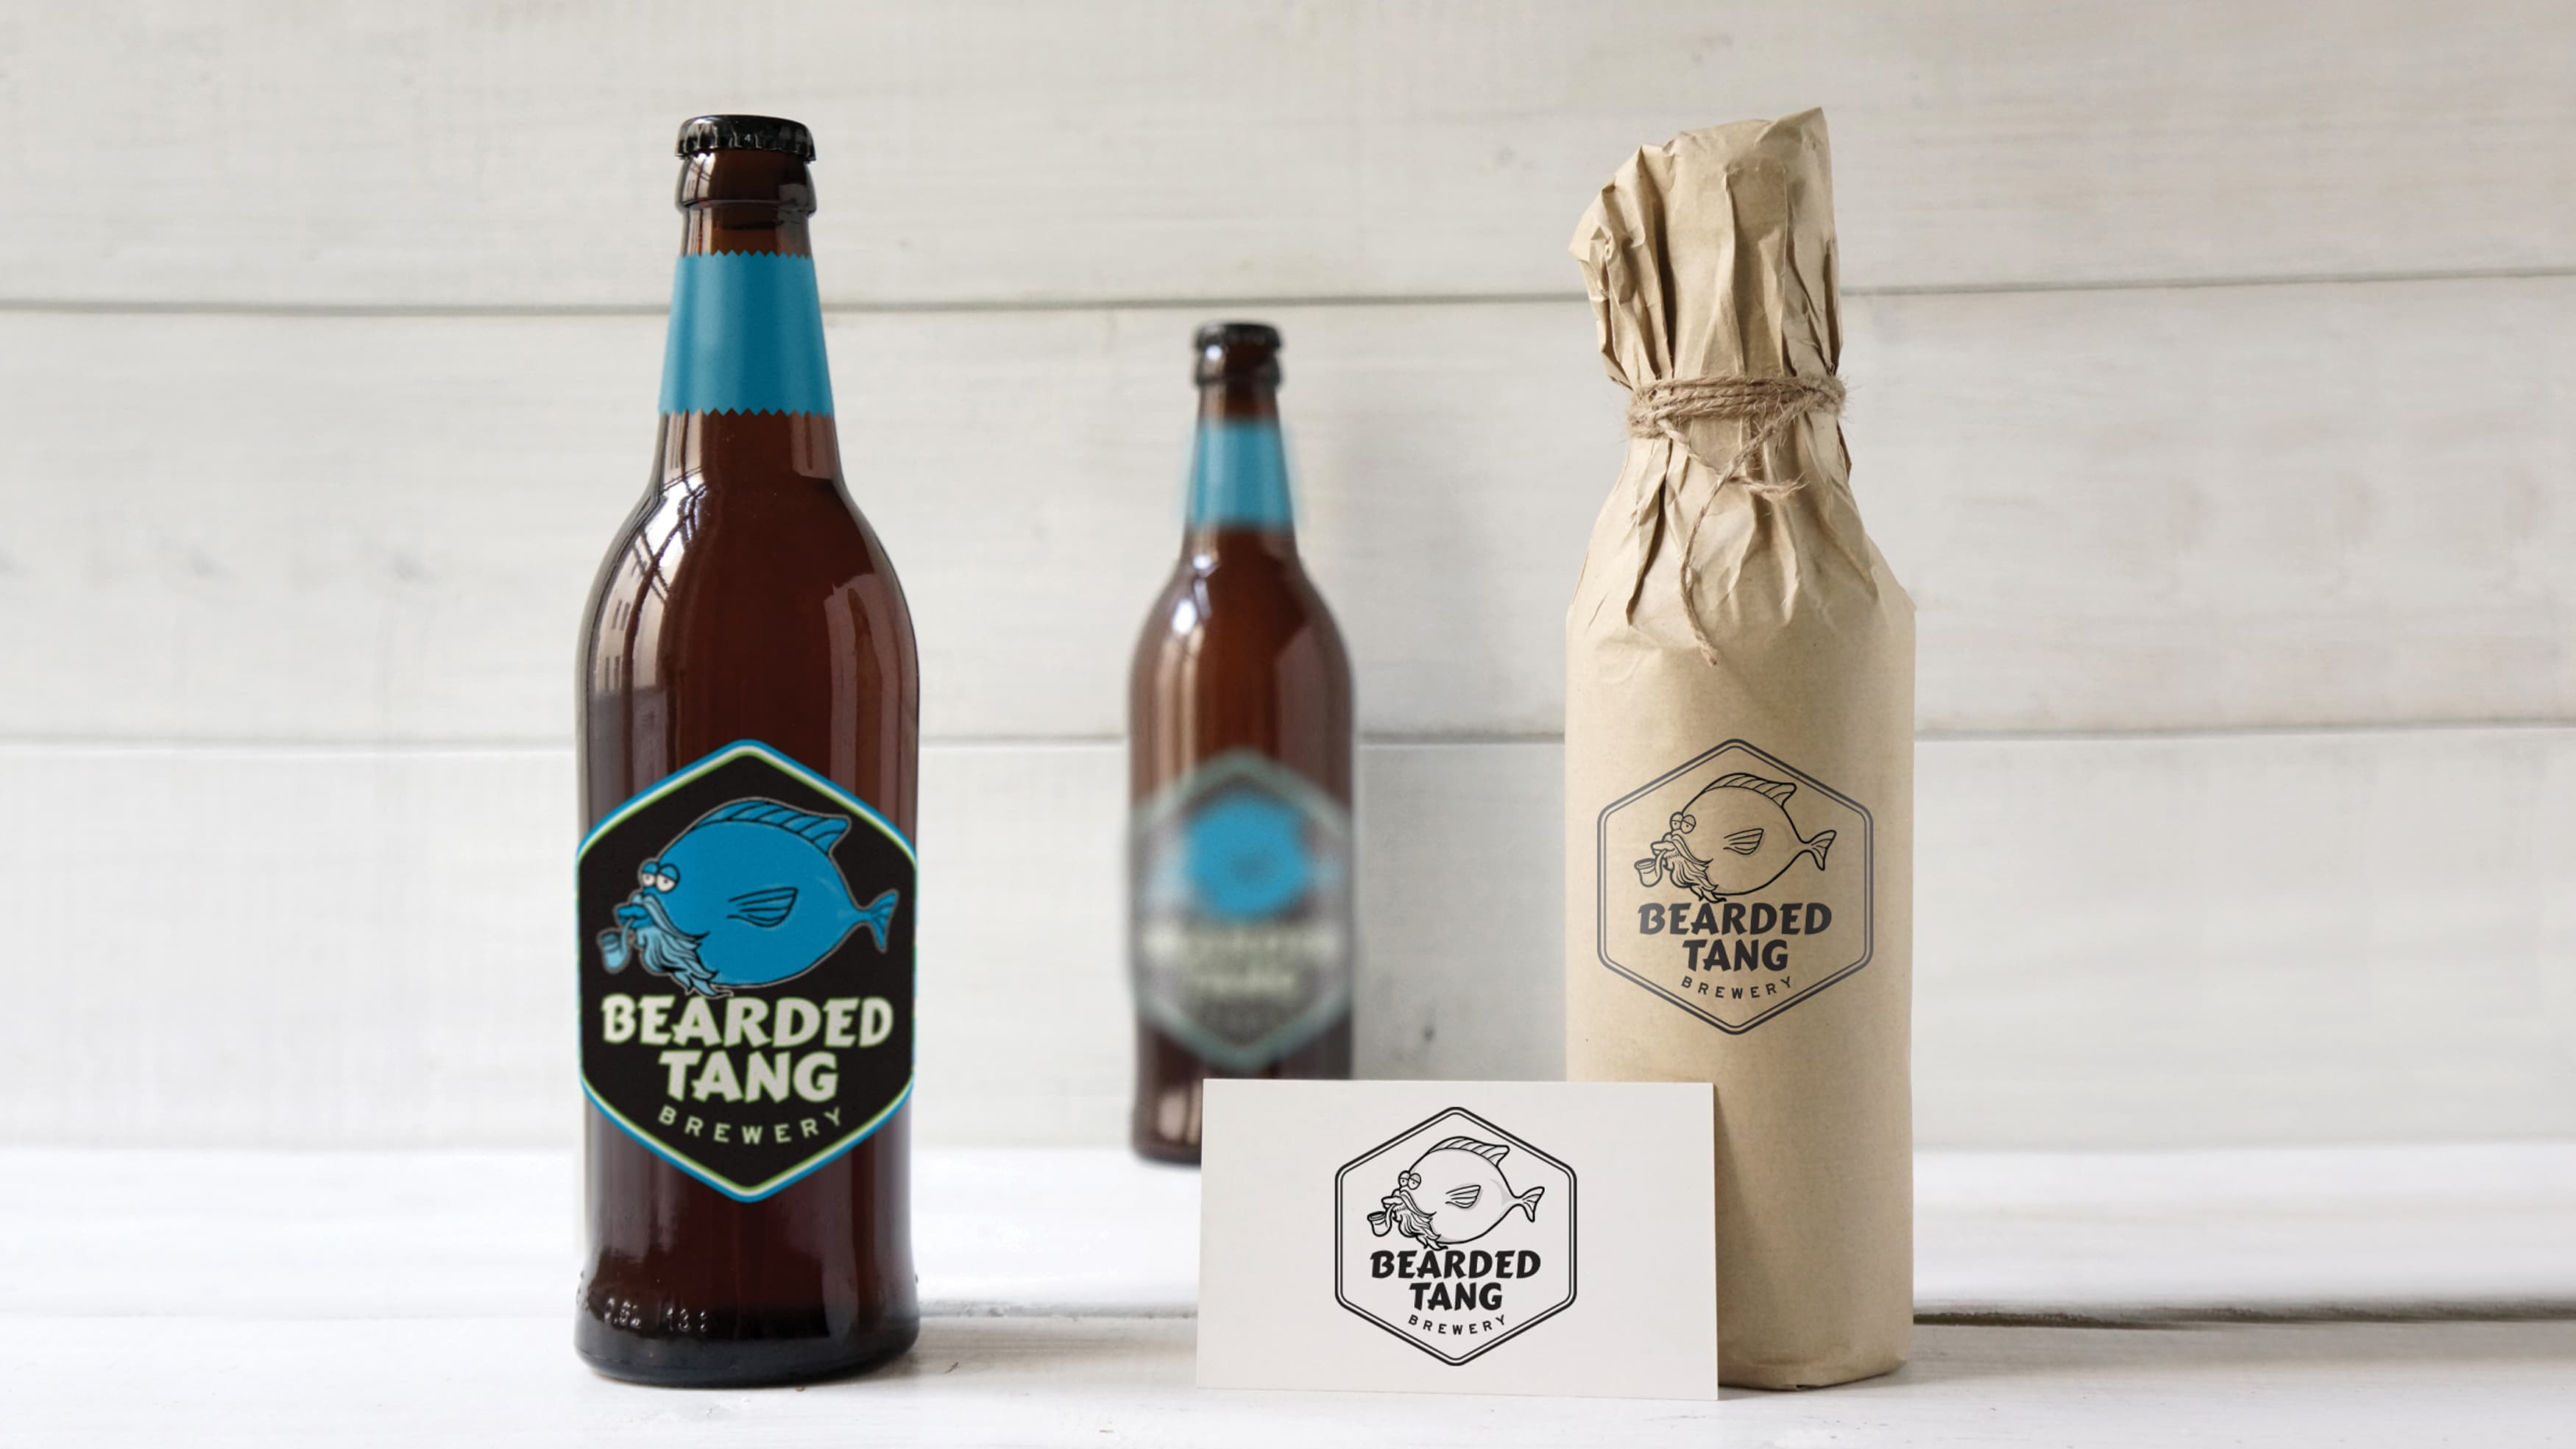 Beer bottles with custom logos on them set up against a white background.